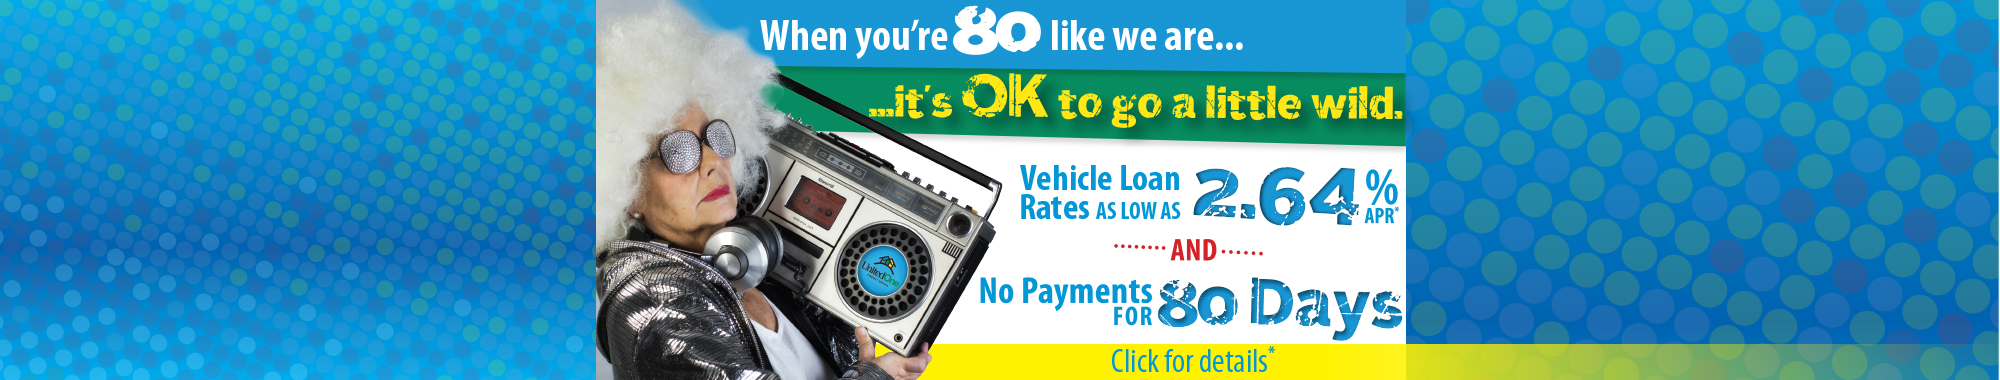 UnitedOne Wild Thing Vehicle Loan Sale - Click here!